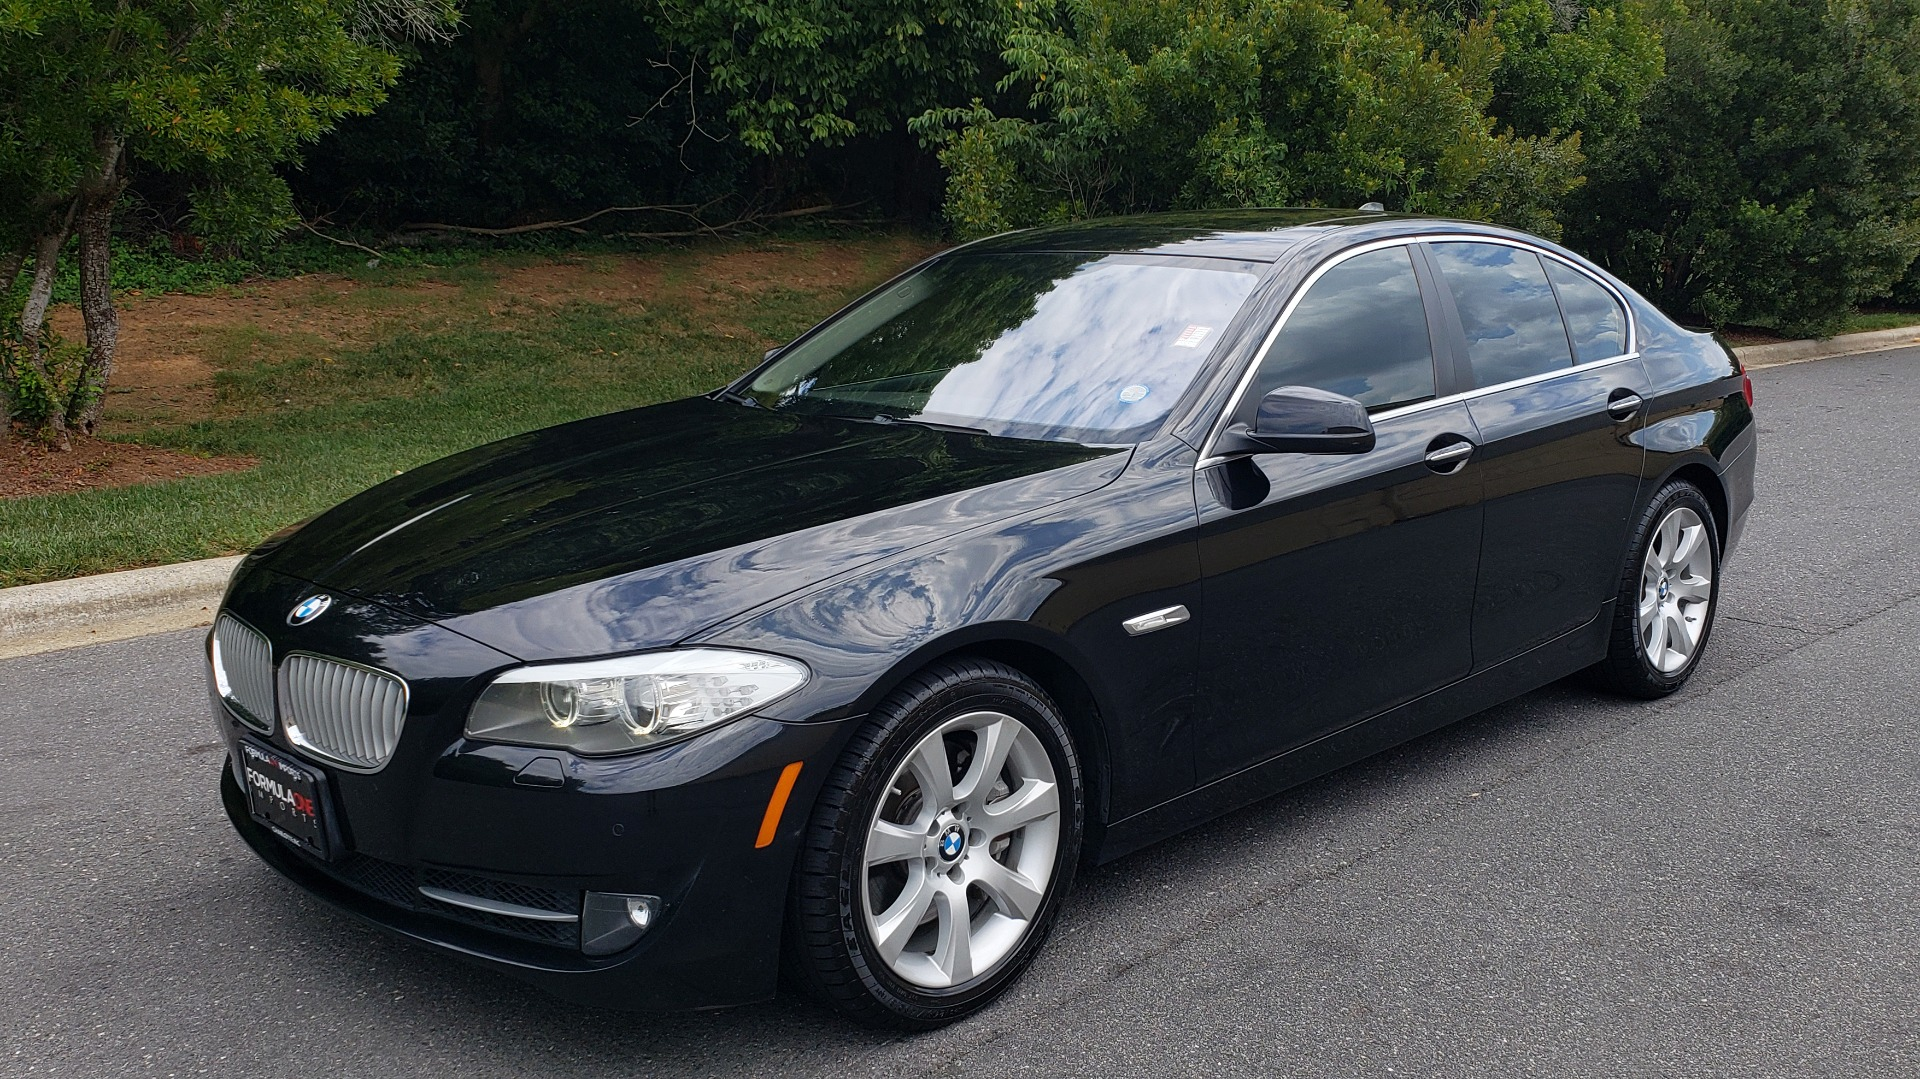 Used 2013 BMW 5 SERIES 550I XDRIVE LUX PKG / EXEC / COLD WTHR / NAV / SUNROOF / REARVIEW for sale Sold at Formula Imports in Charlotte NC 28227 1